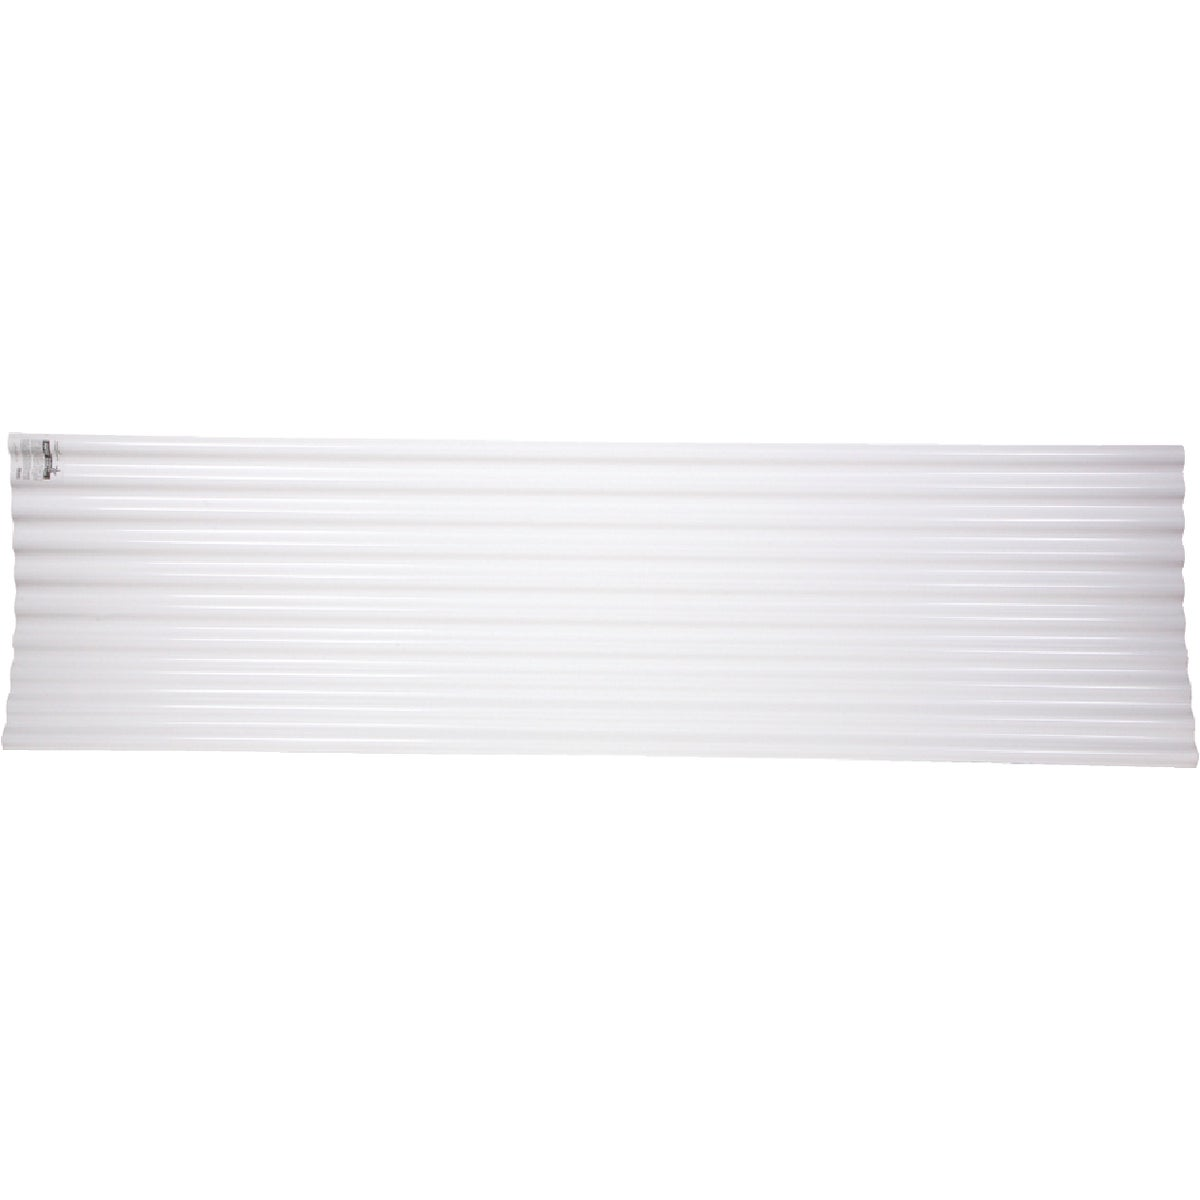 12' WHT CORGTD PVC PANEL - 120139 by Ofic North America